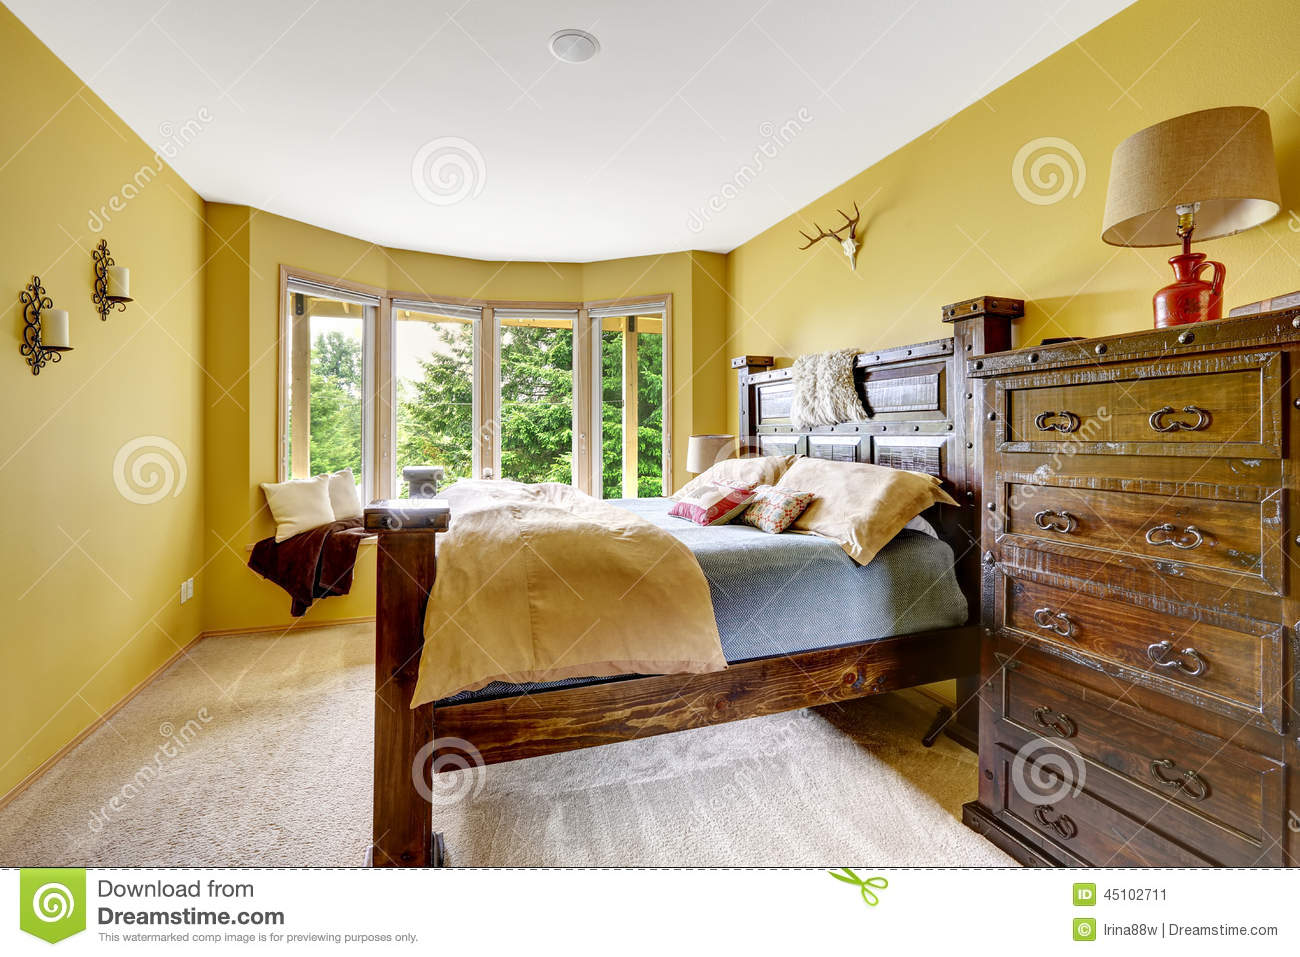 Farm House Interior Luxury Bedroom Interior With Rich Wooden